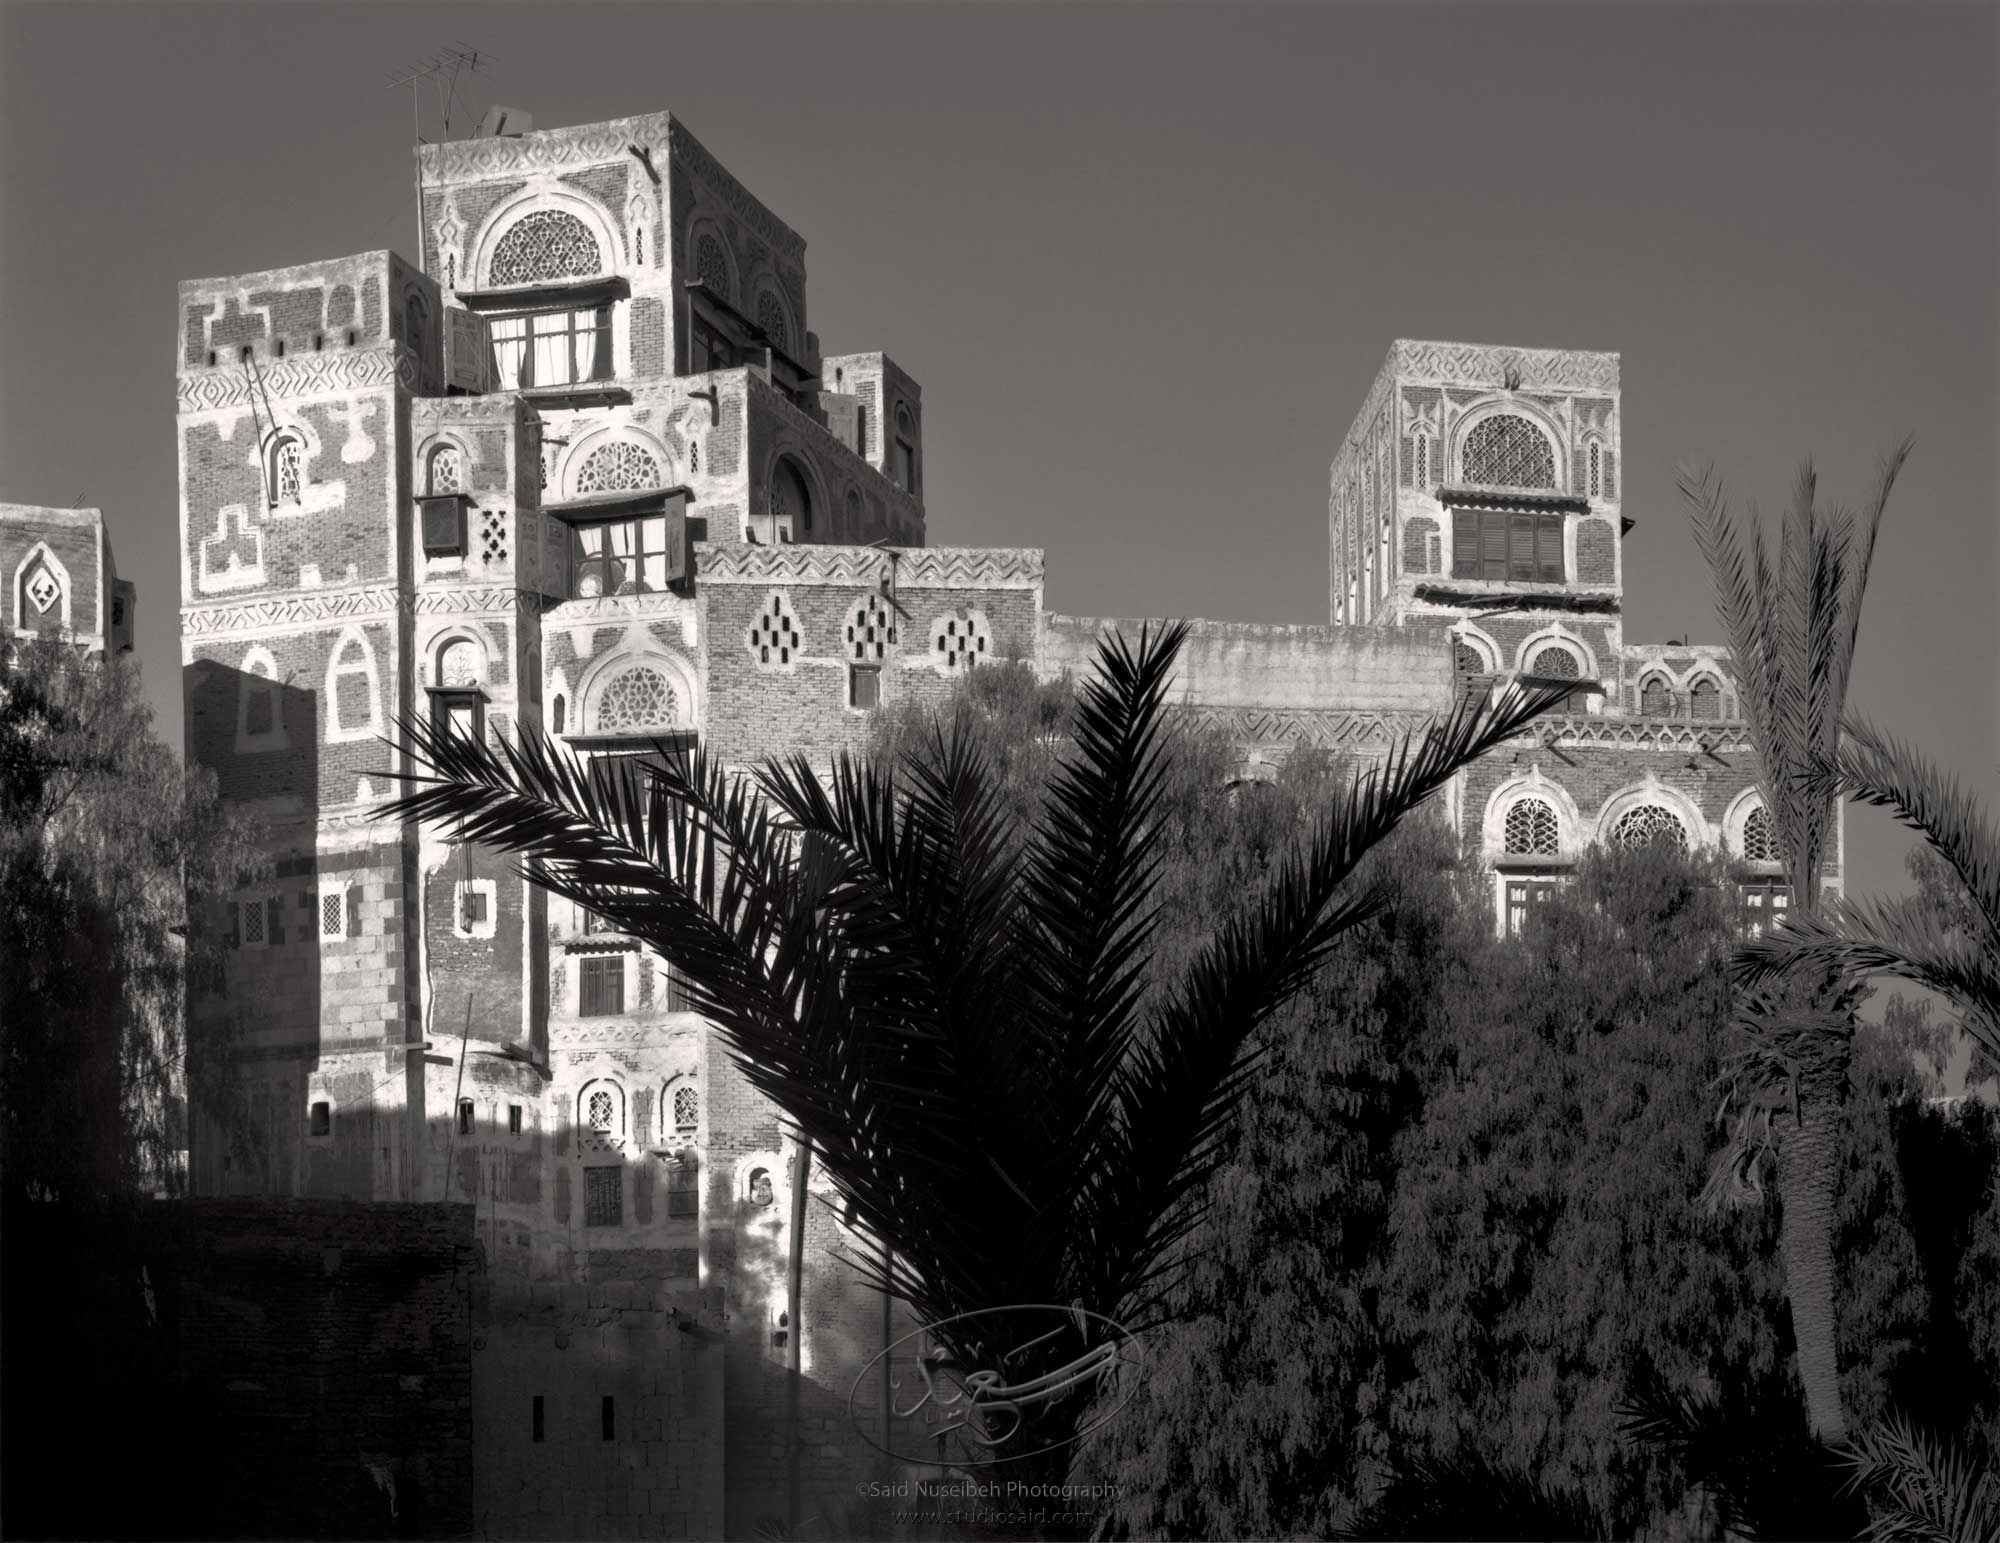 From shared community gardens, in the cnter of a circle of houses. Old City Sana'a